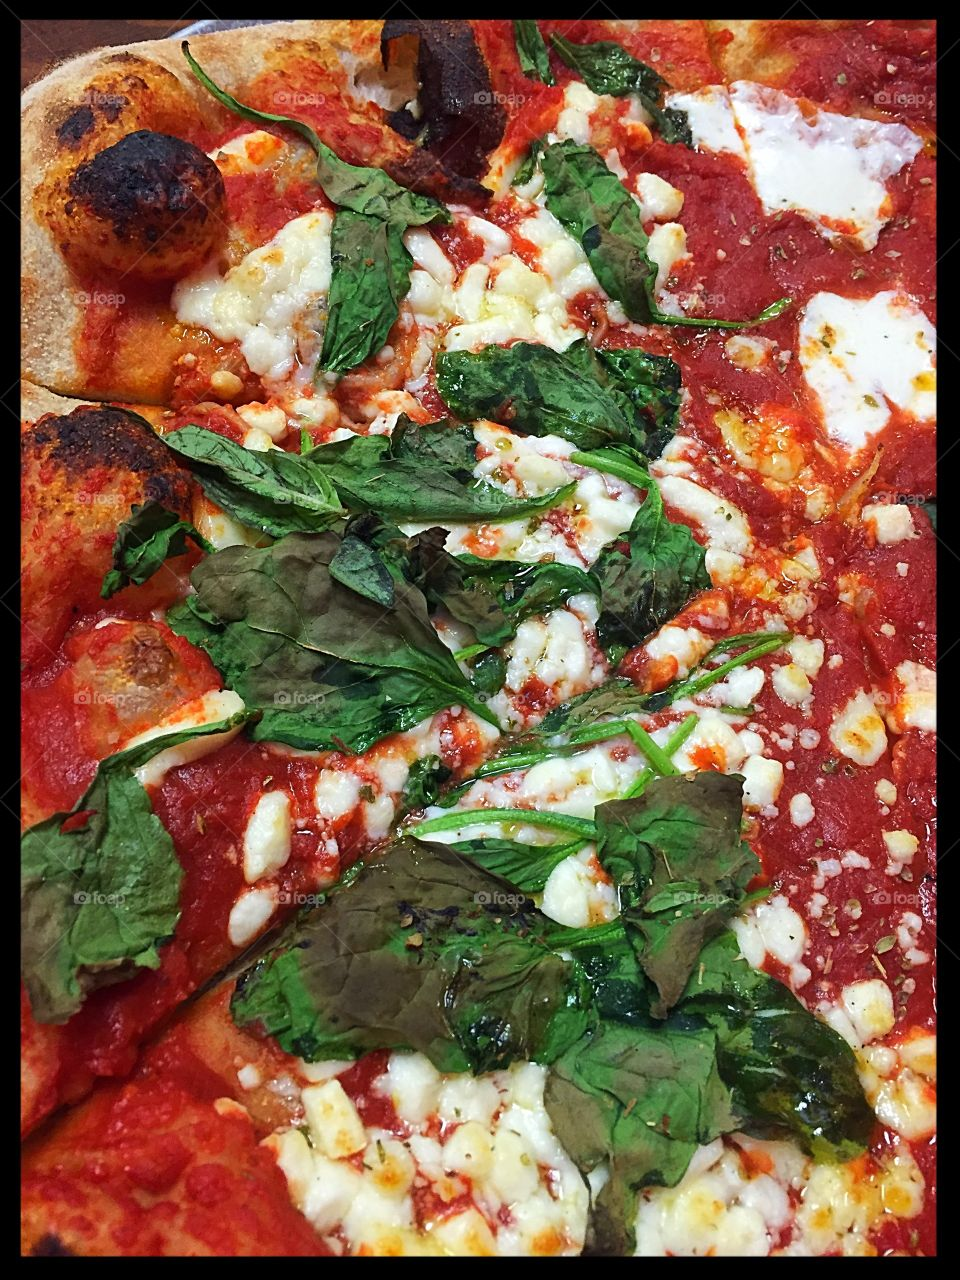 Delicious, hot, mouth watering pizza